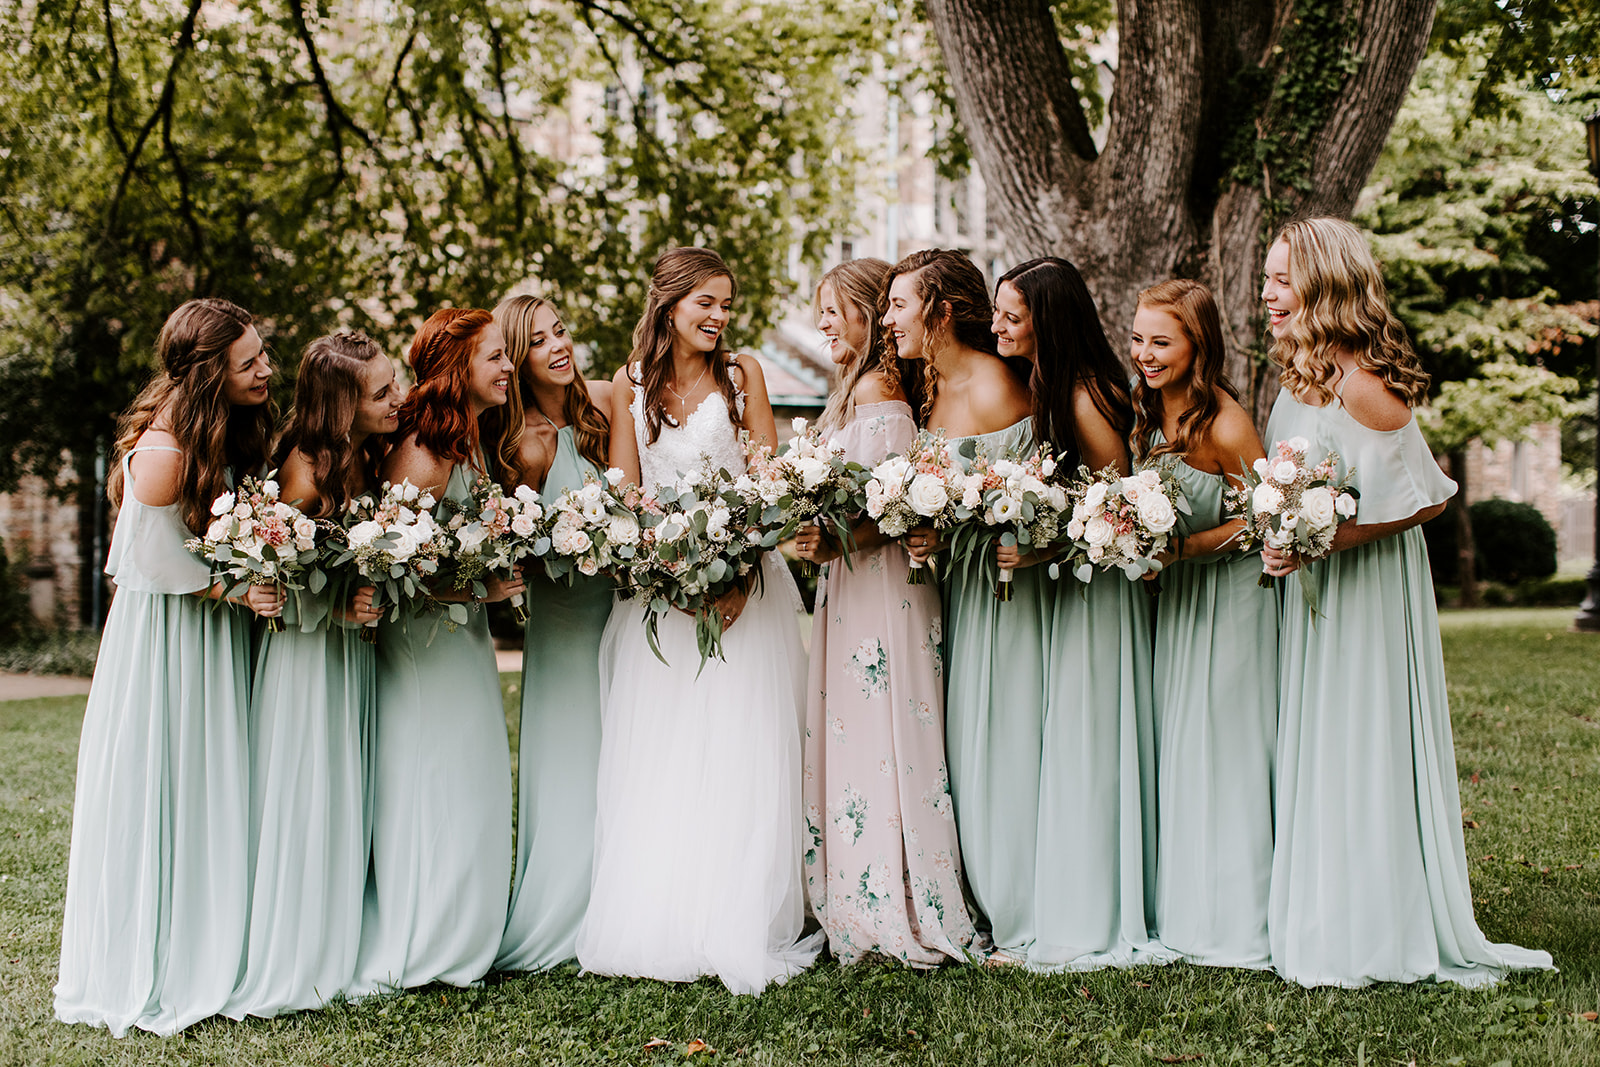 Meet Events Plus & Creations by Debbie: Where Custom Services and Attention to Detail Collide   Nashville Bride Guide